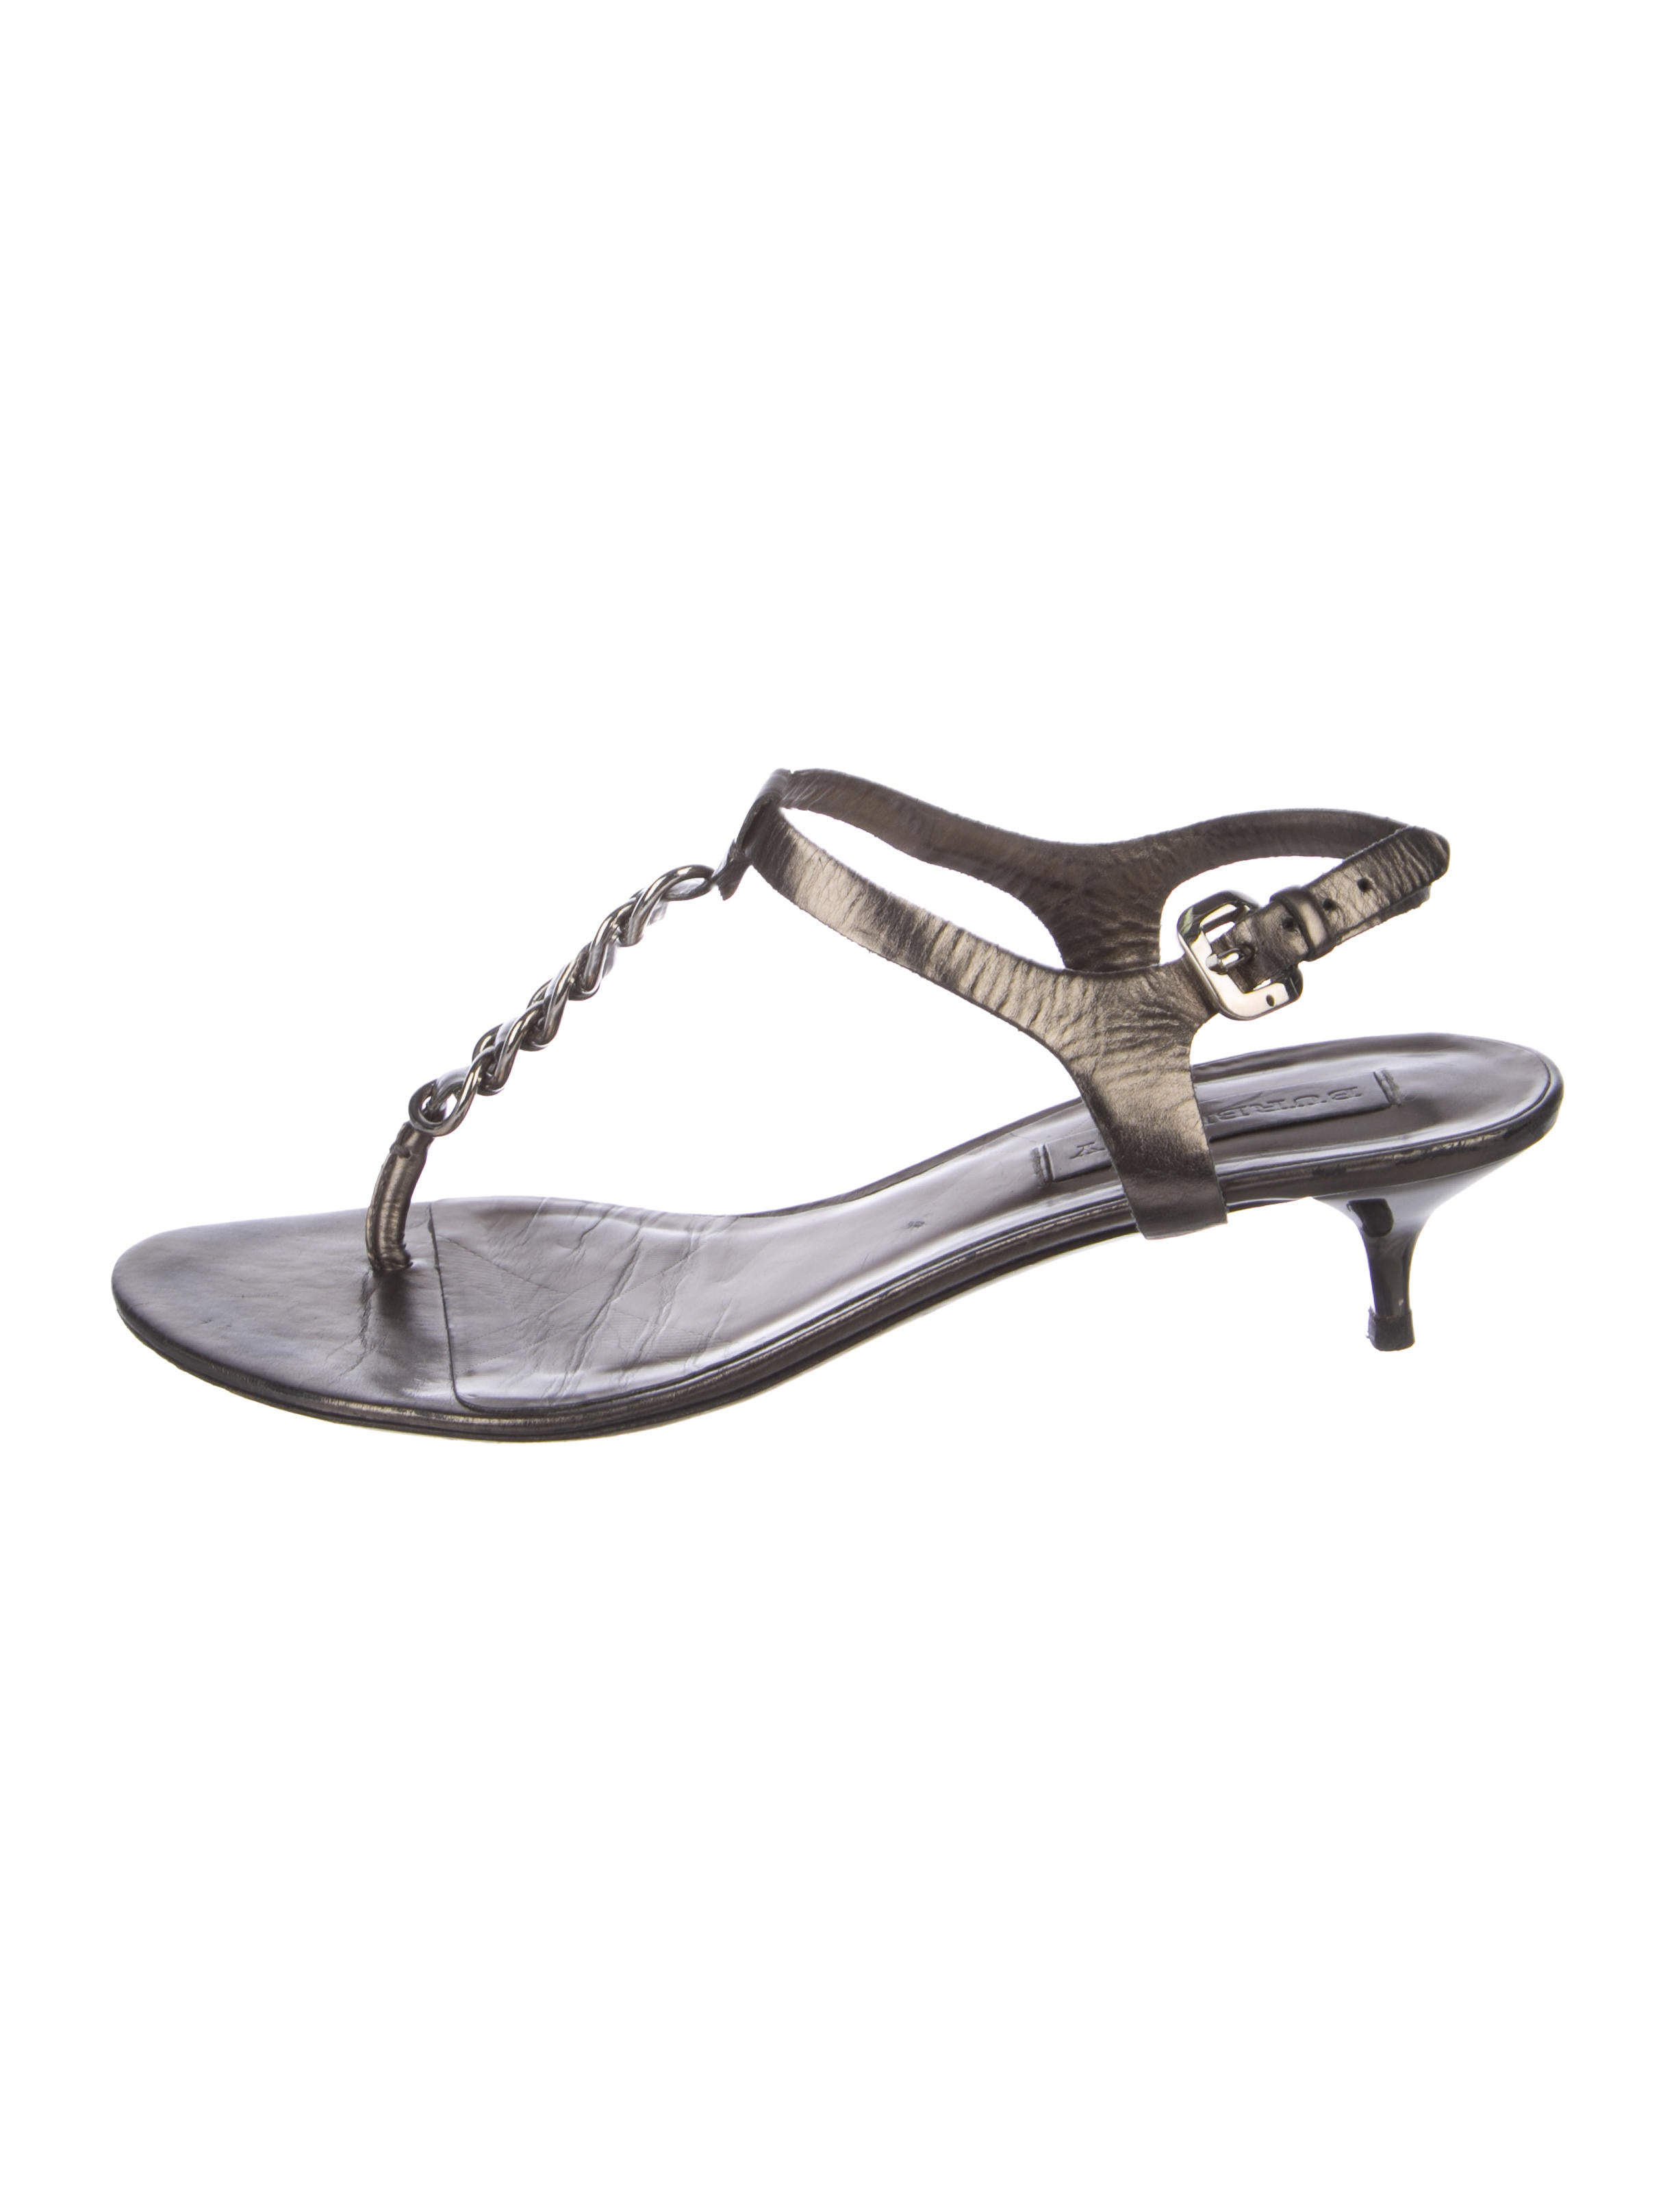 b9db0eee971 Burberry Chain-Link Thong Sandals - Shoes - BUR88413